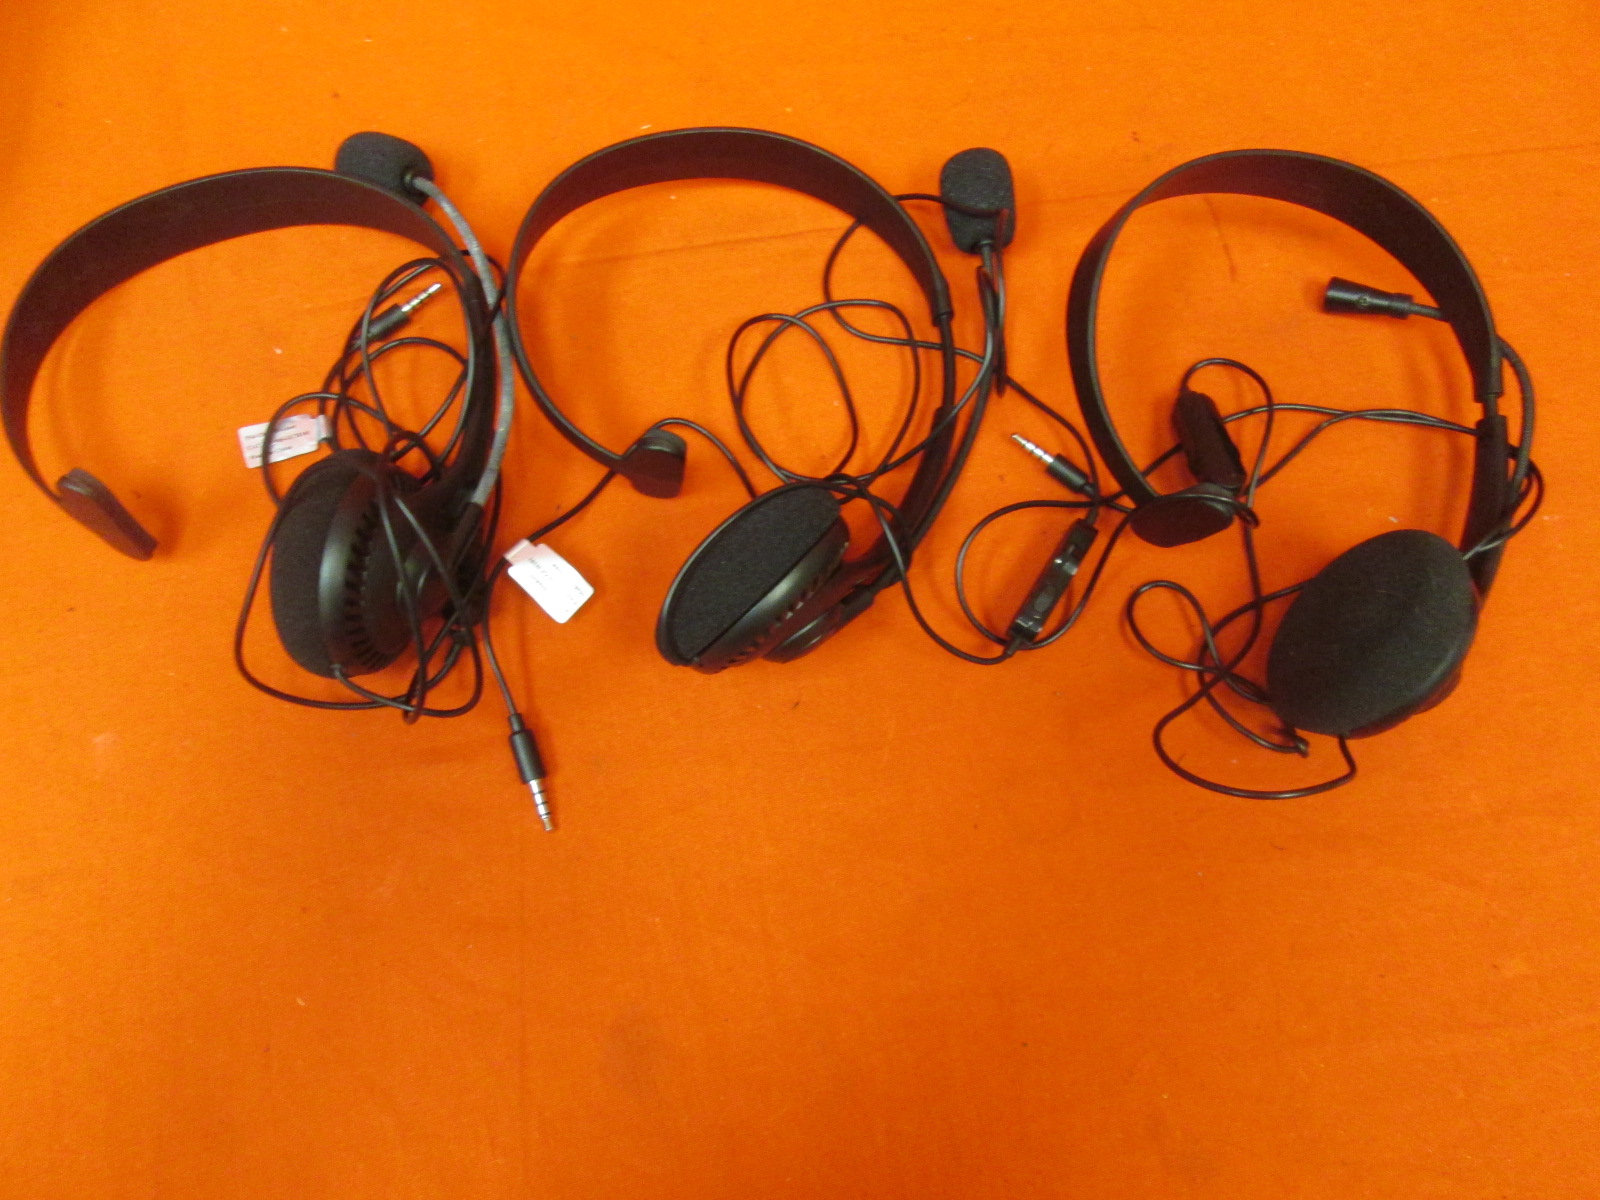 Broken Lot Of 3 Sony PlayStation 3 USB Chat Headsets